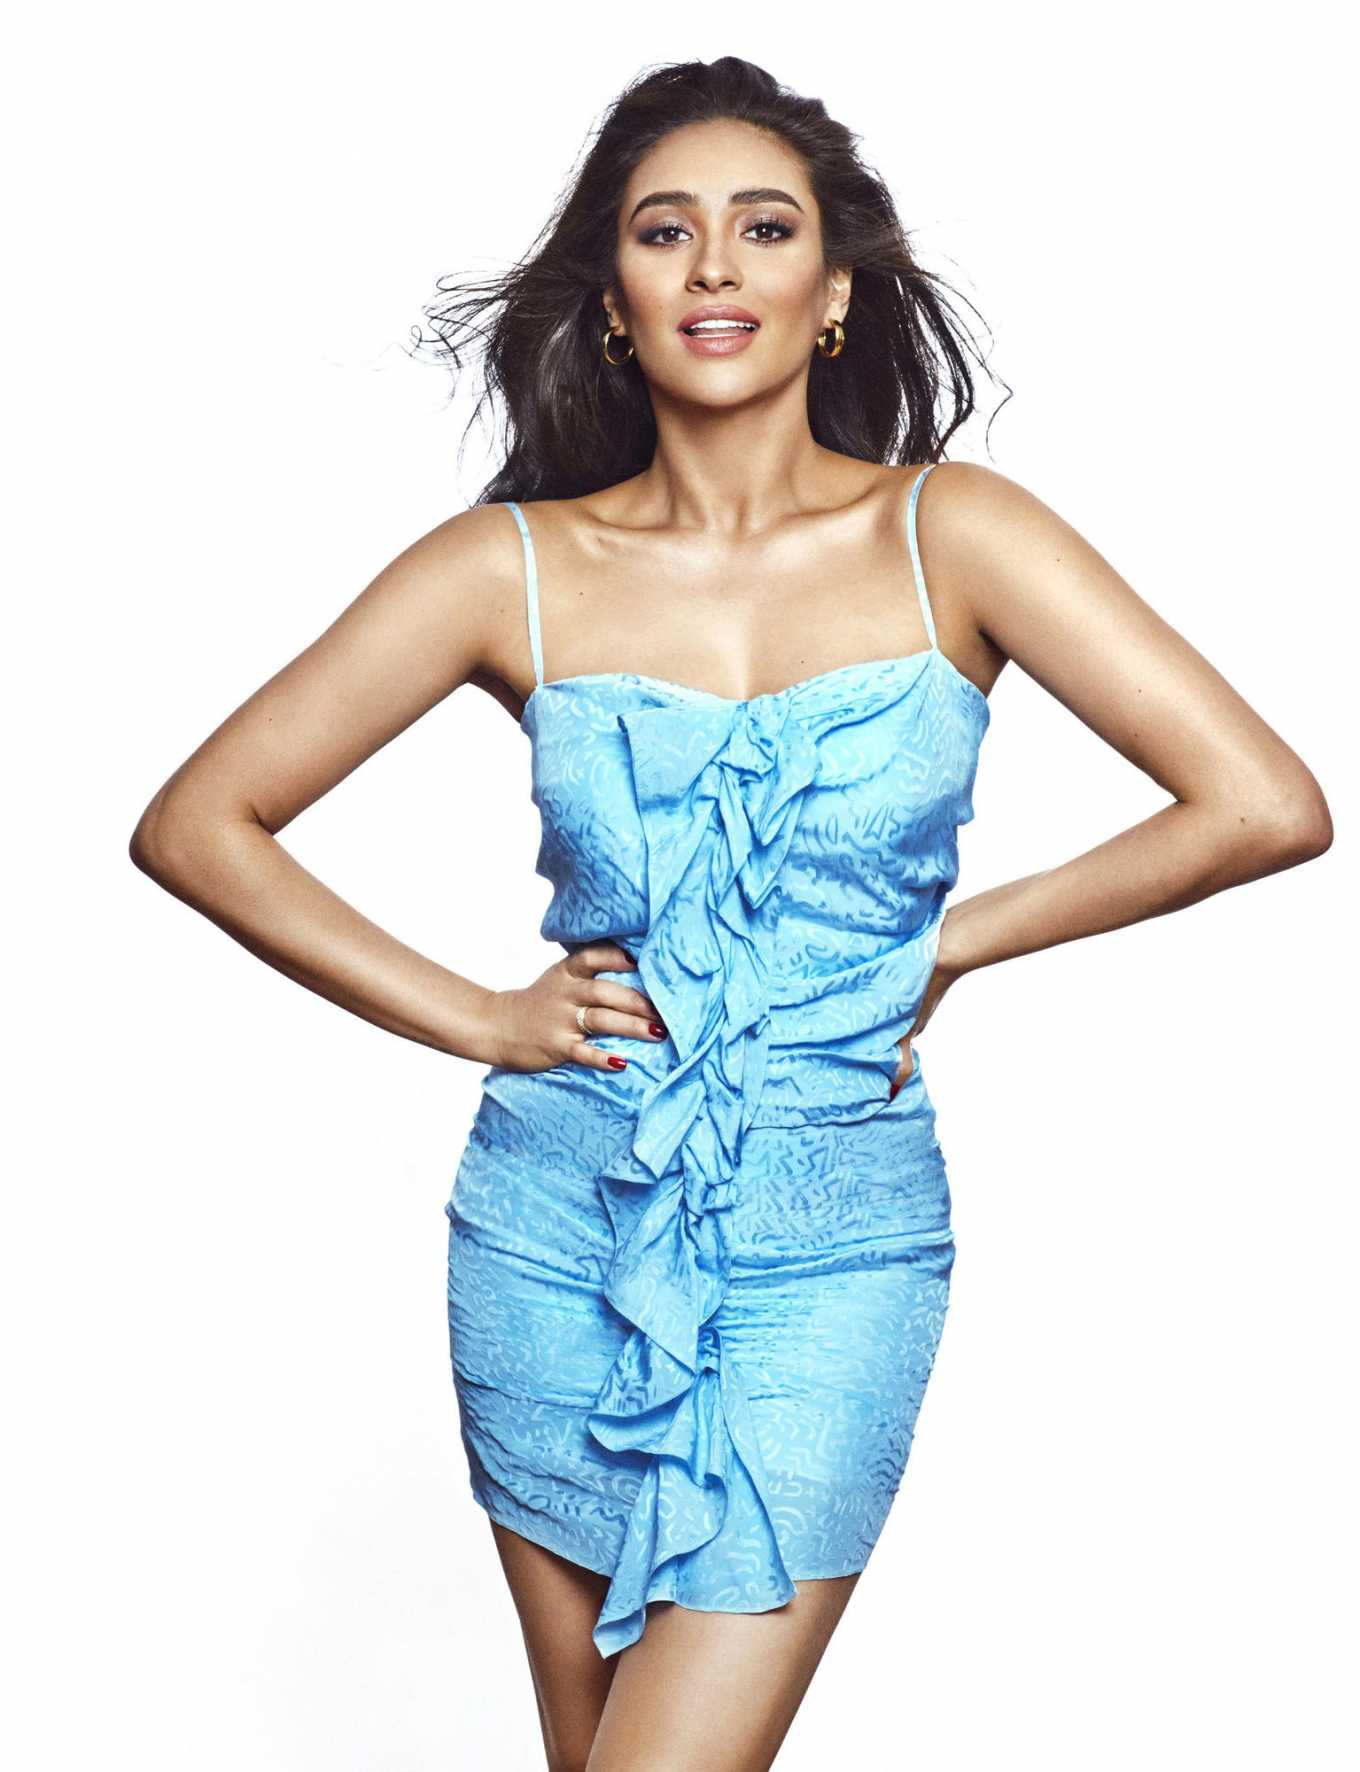 Shay Mitchell Photoshoot for Cosmopolitan Middle East Magazine (March 2020)